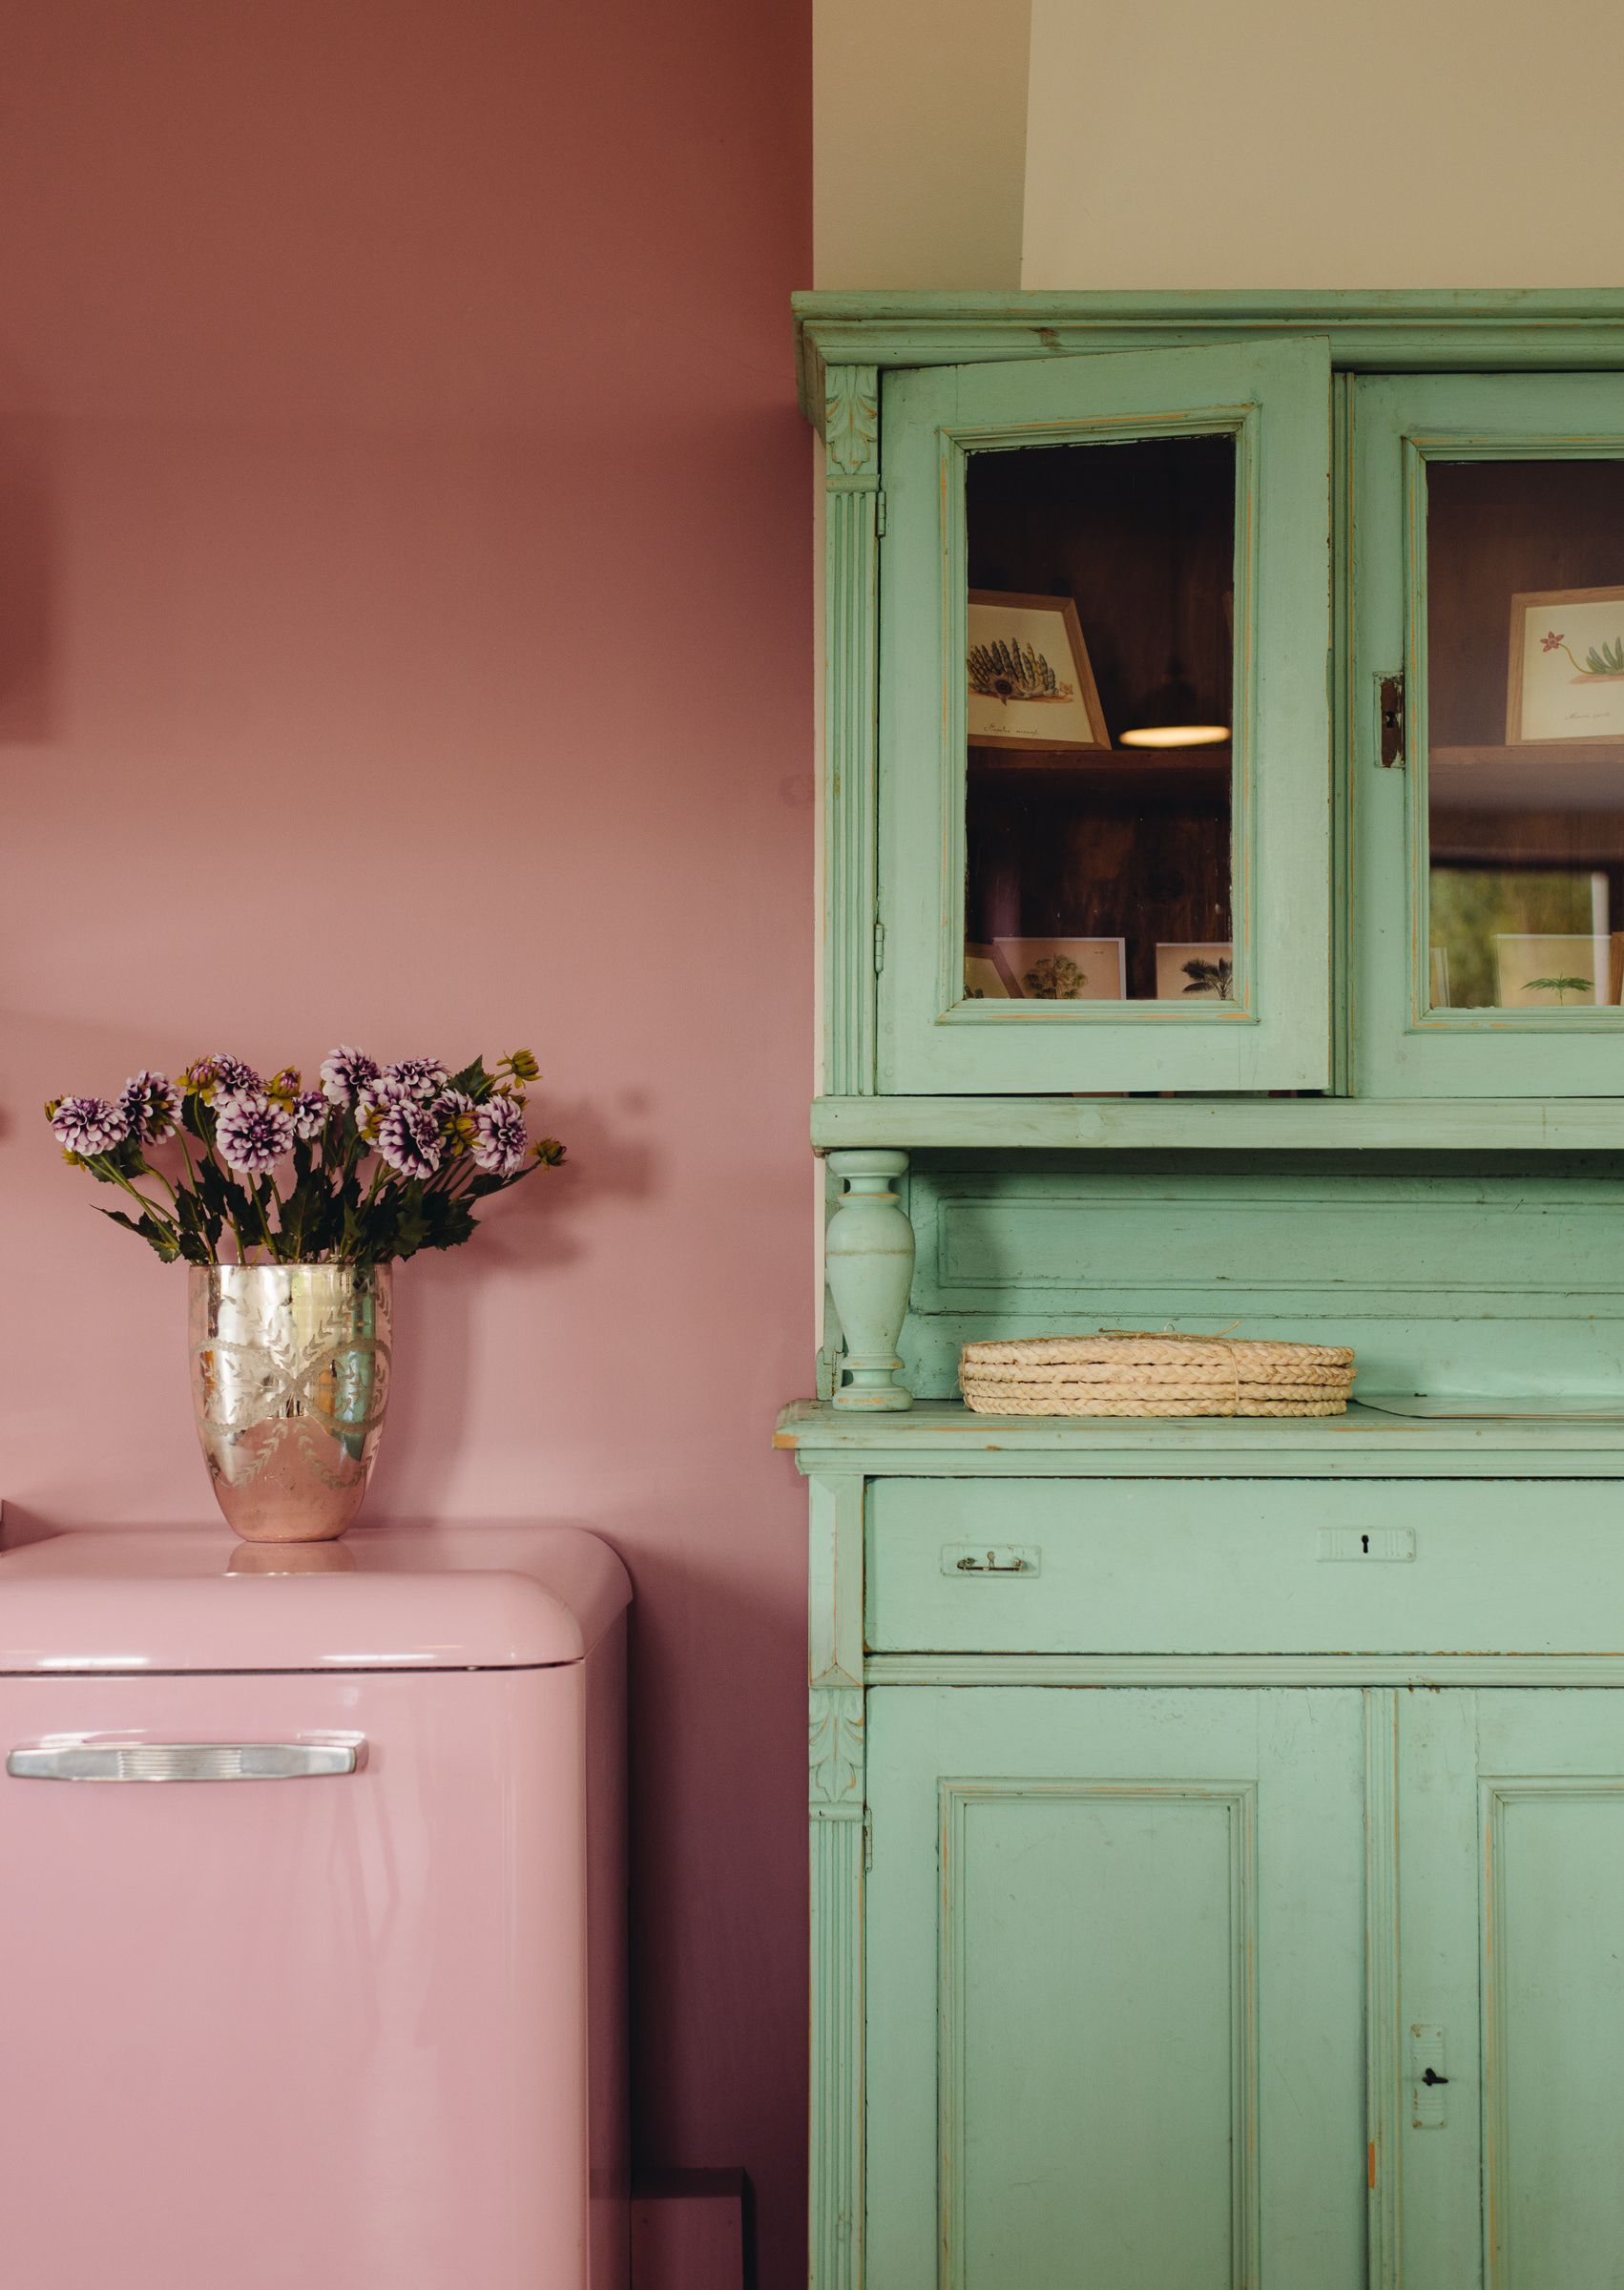 Pink and green inspiring interiors pinterest dishwashers